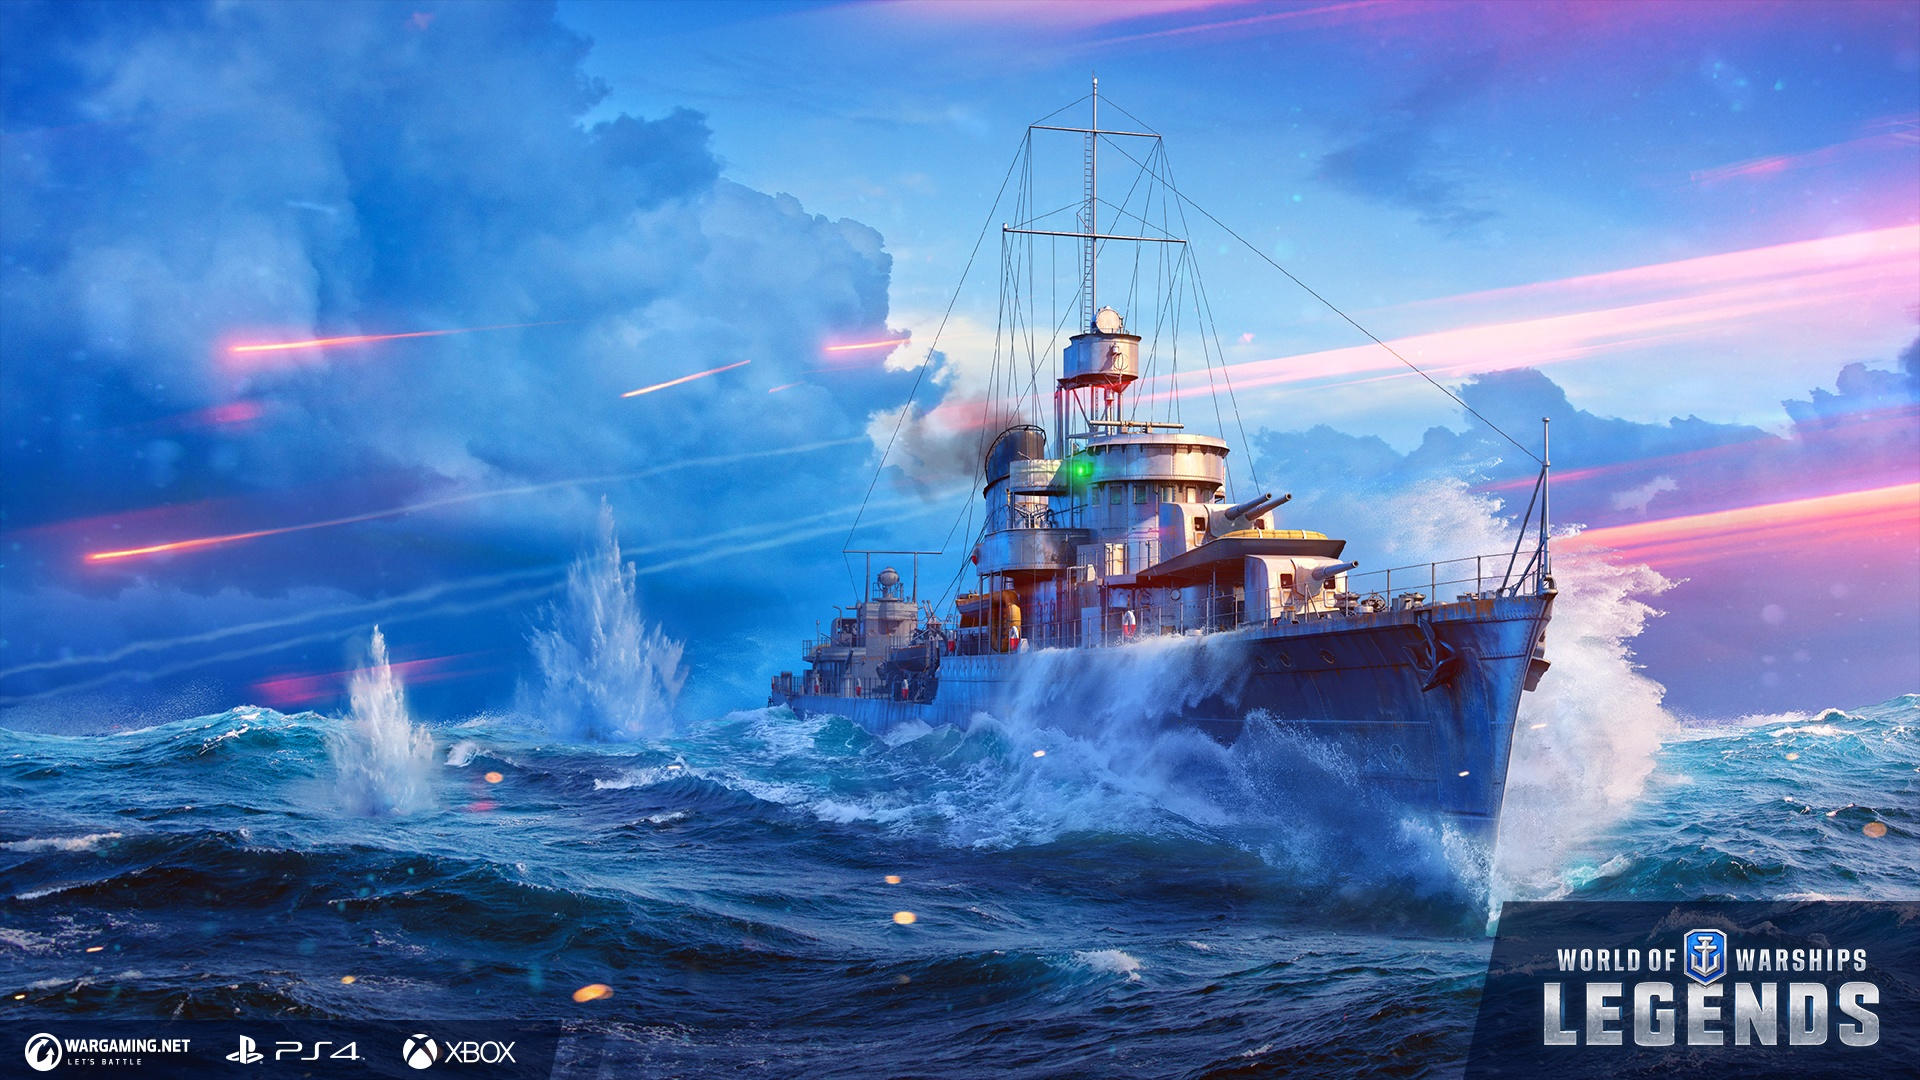 World of Warships Legends Enters Early Access in April